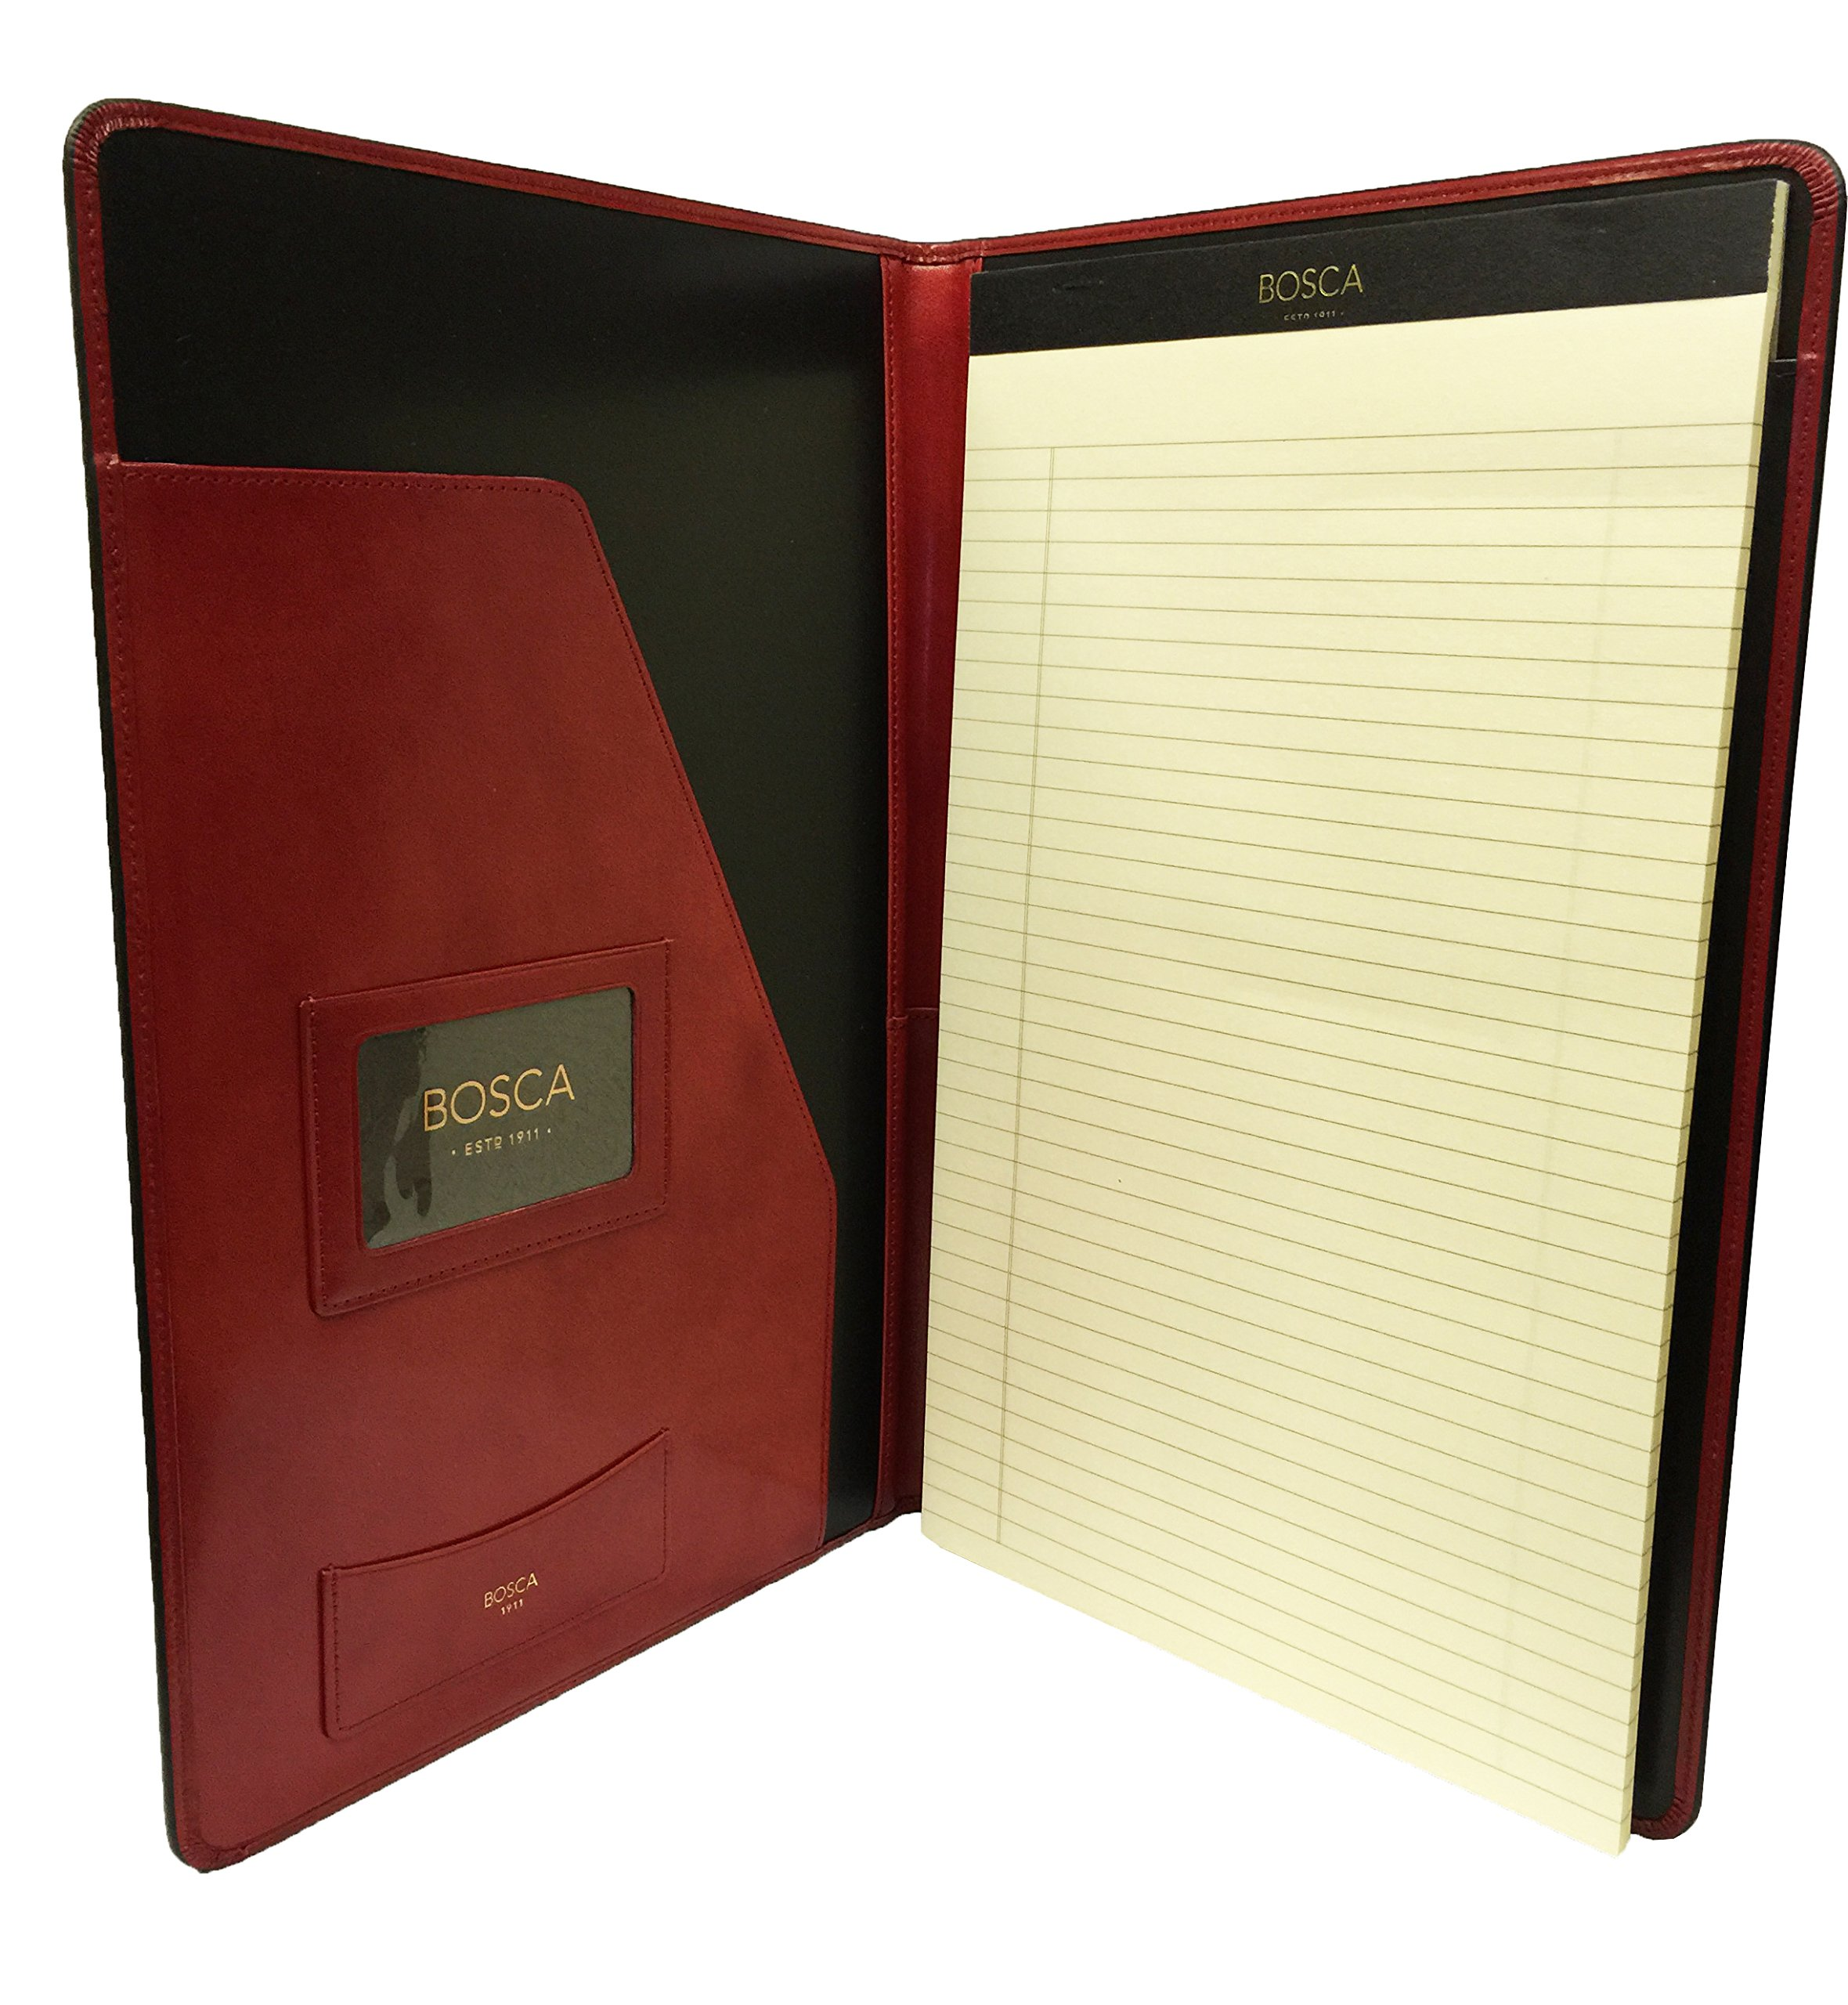 Bosca Old Leather 8 1/2 x 14 Legal Size Writing Pad Cover - Red